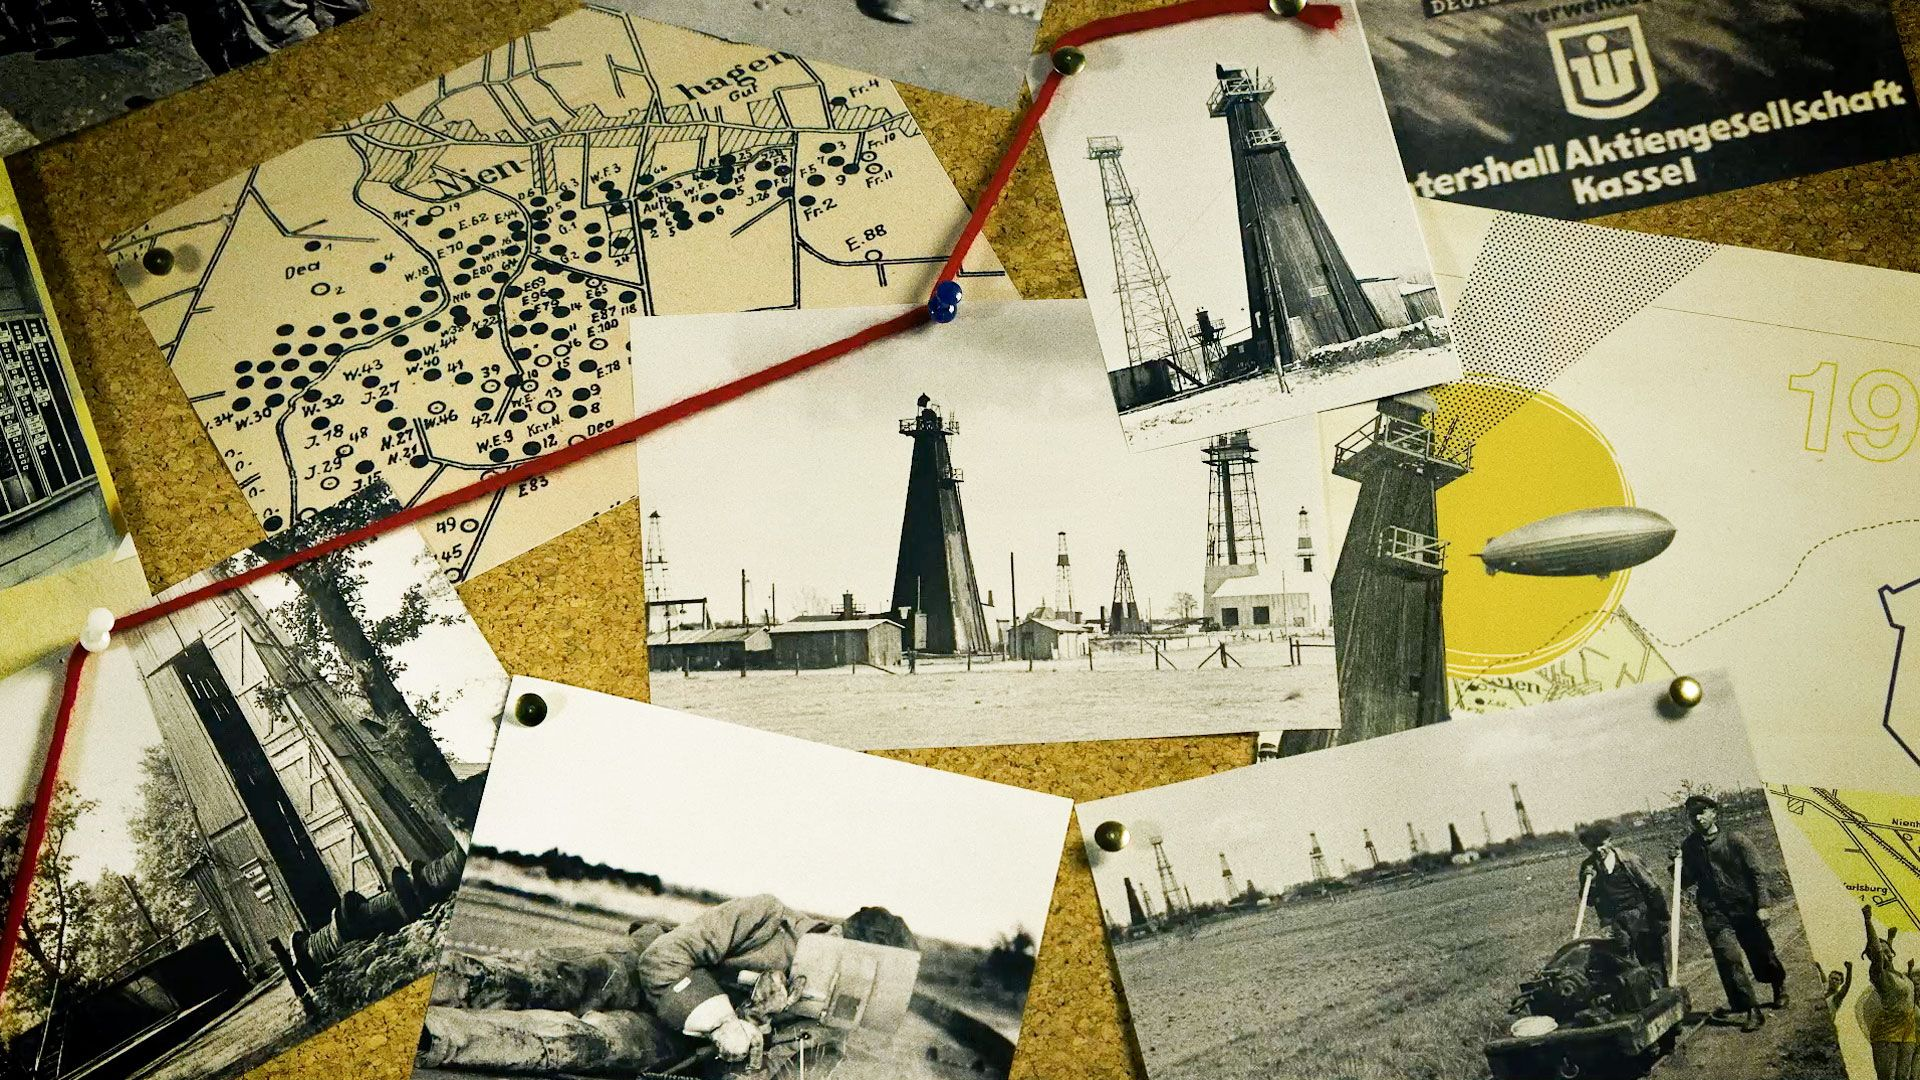 125 years of Wintershall